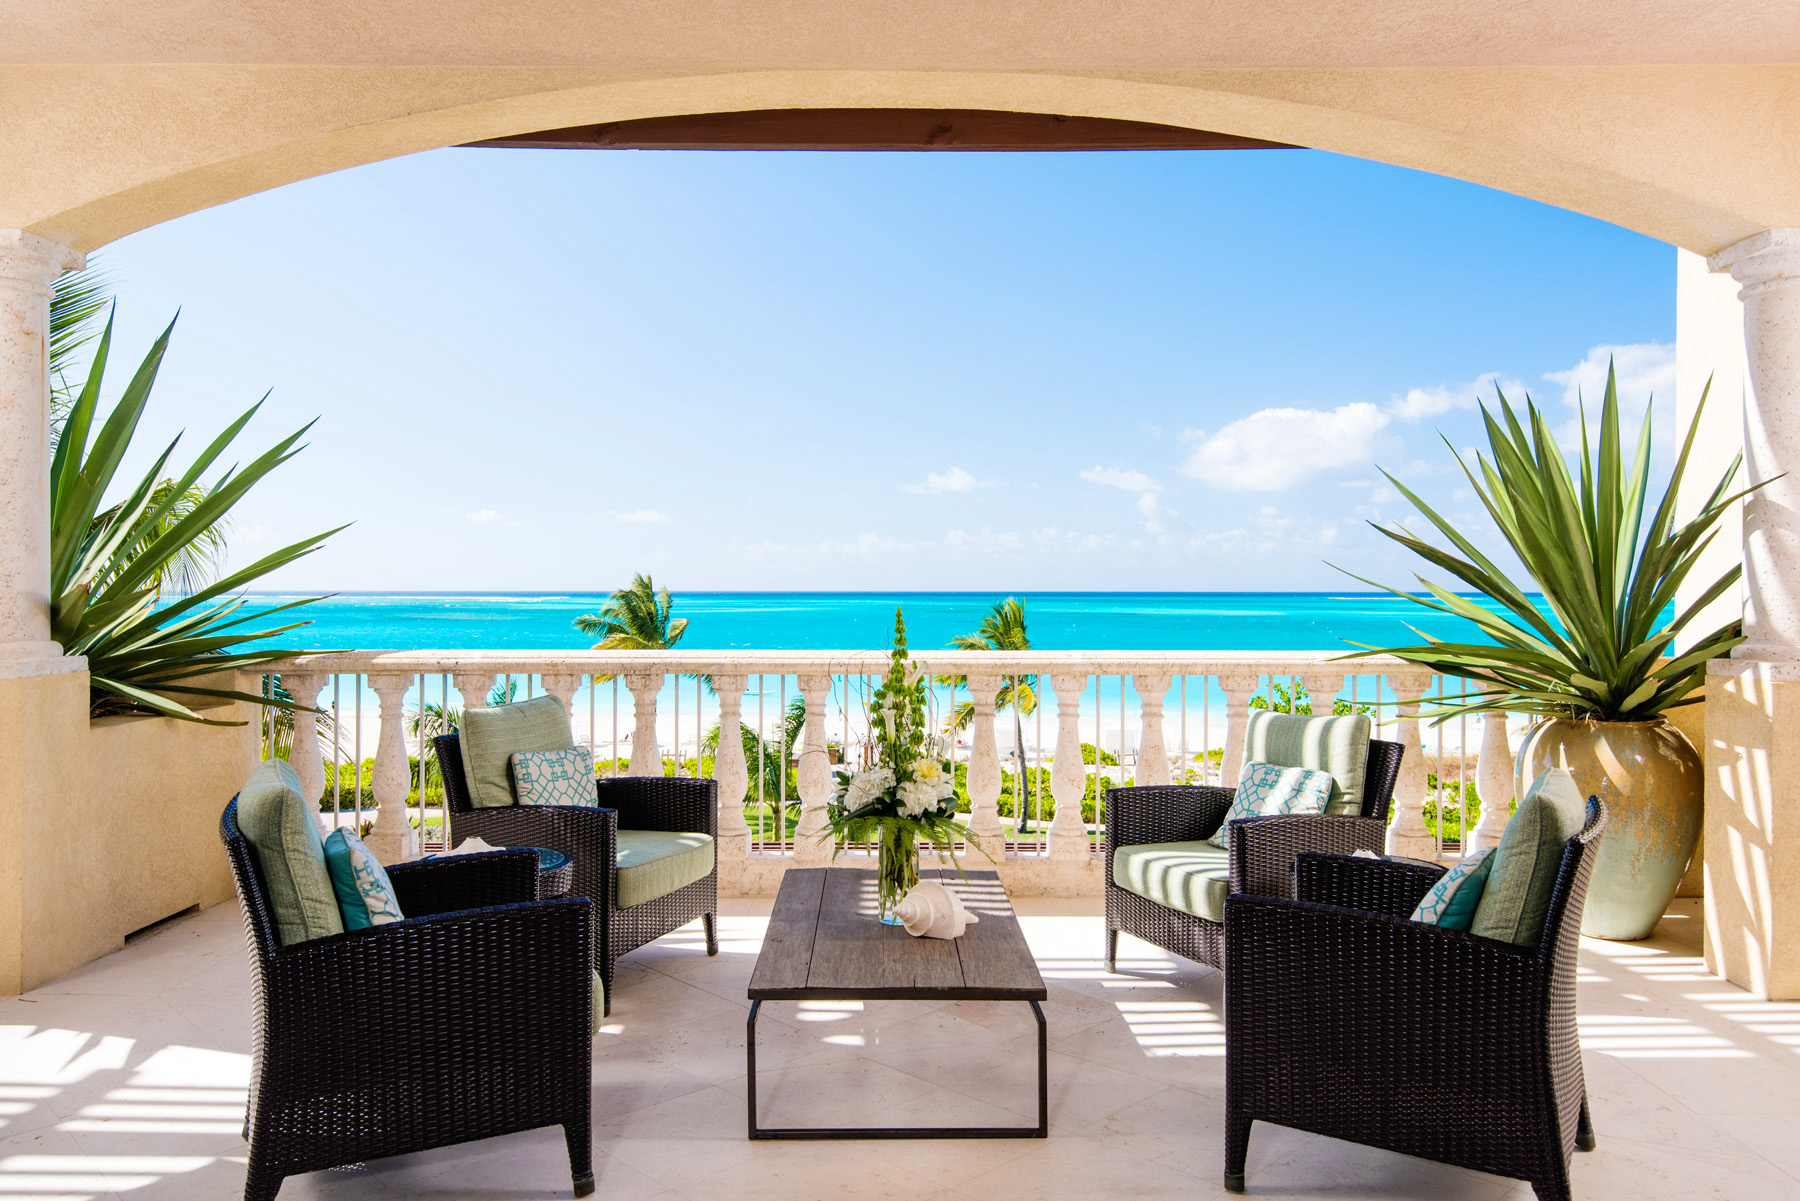 Condominium for Sale at The Estate at Grace Bay Club G301 Grace Bay Resorts, Grace Bay, Turks And Caicos Islands